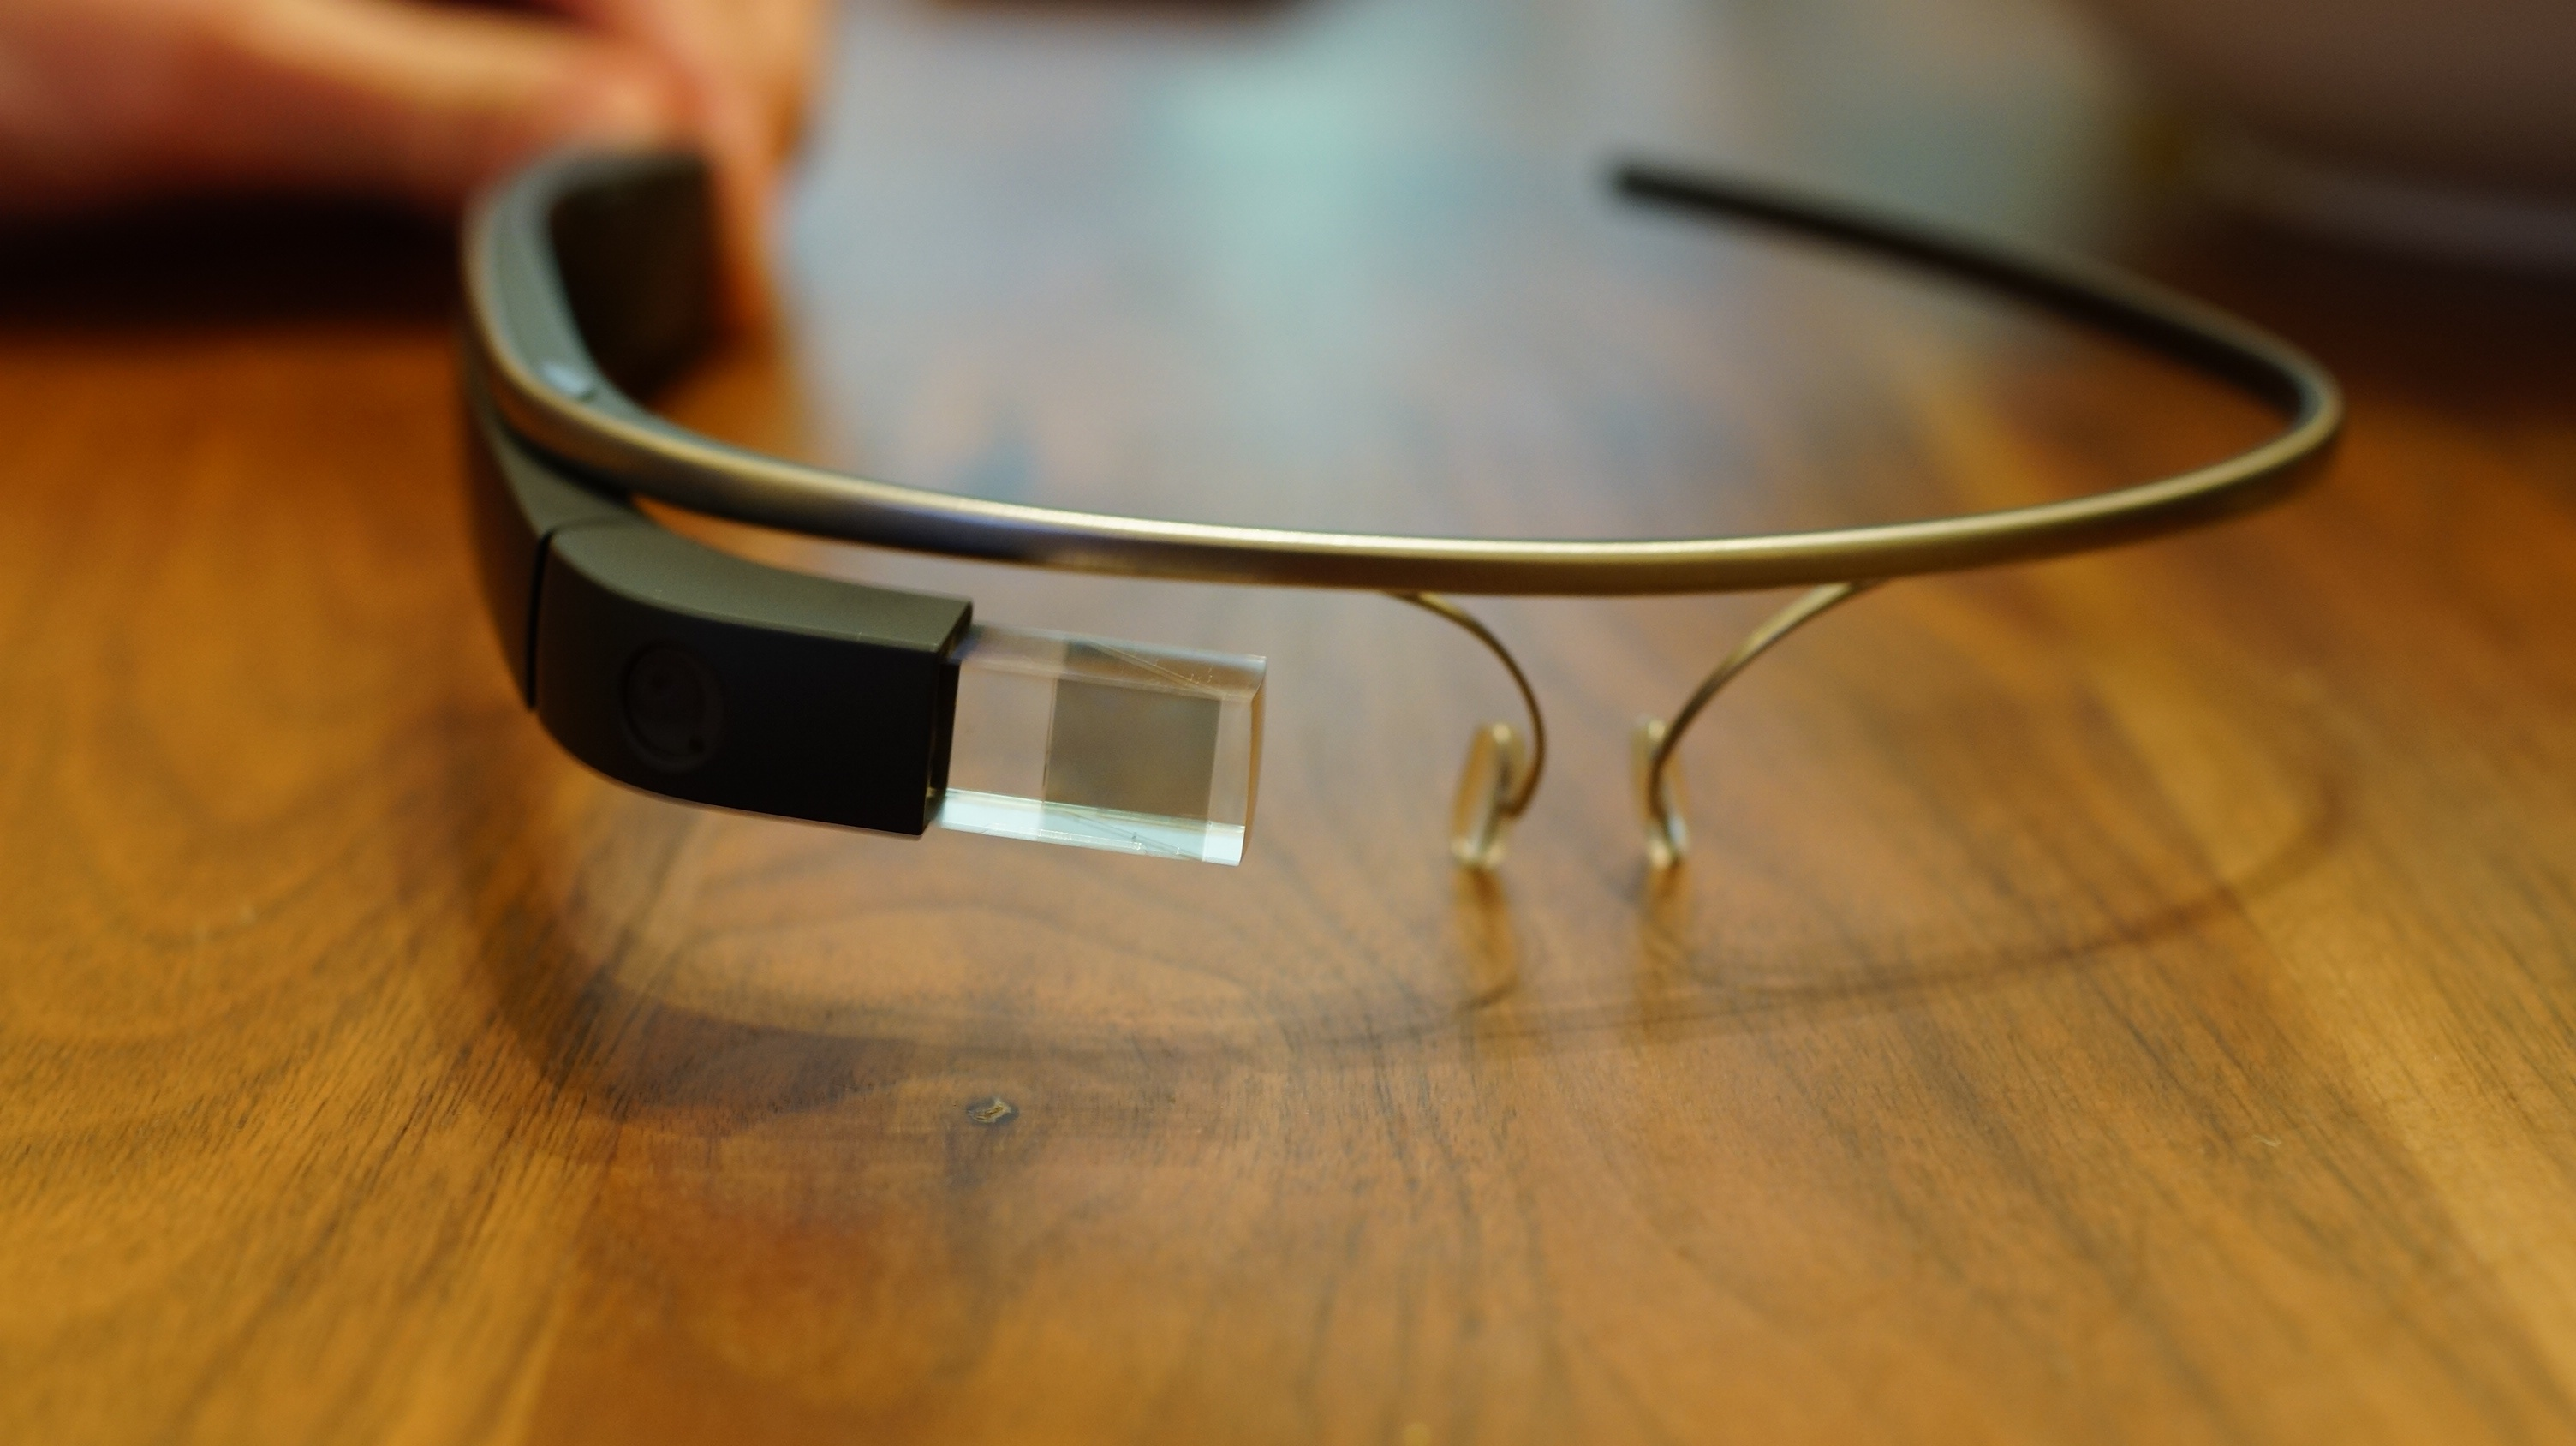 Patent Shows Possible New Google Glass Design, Would You Wear These?